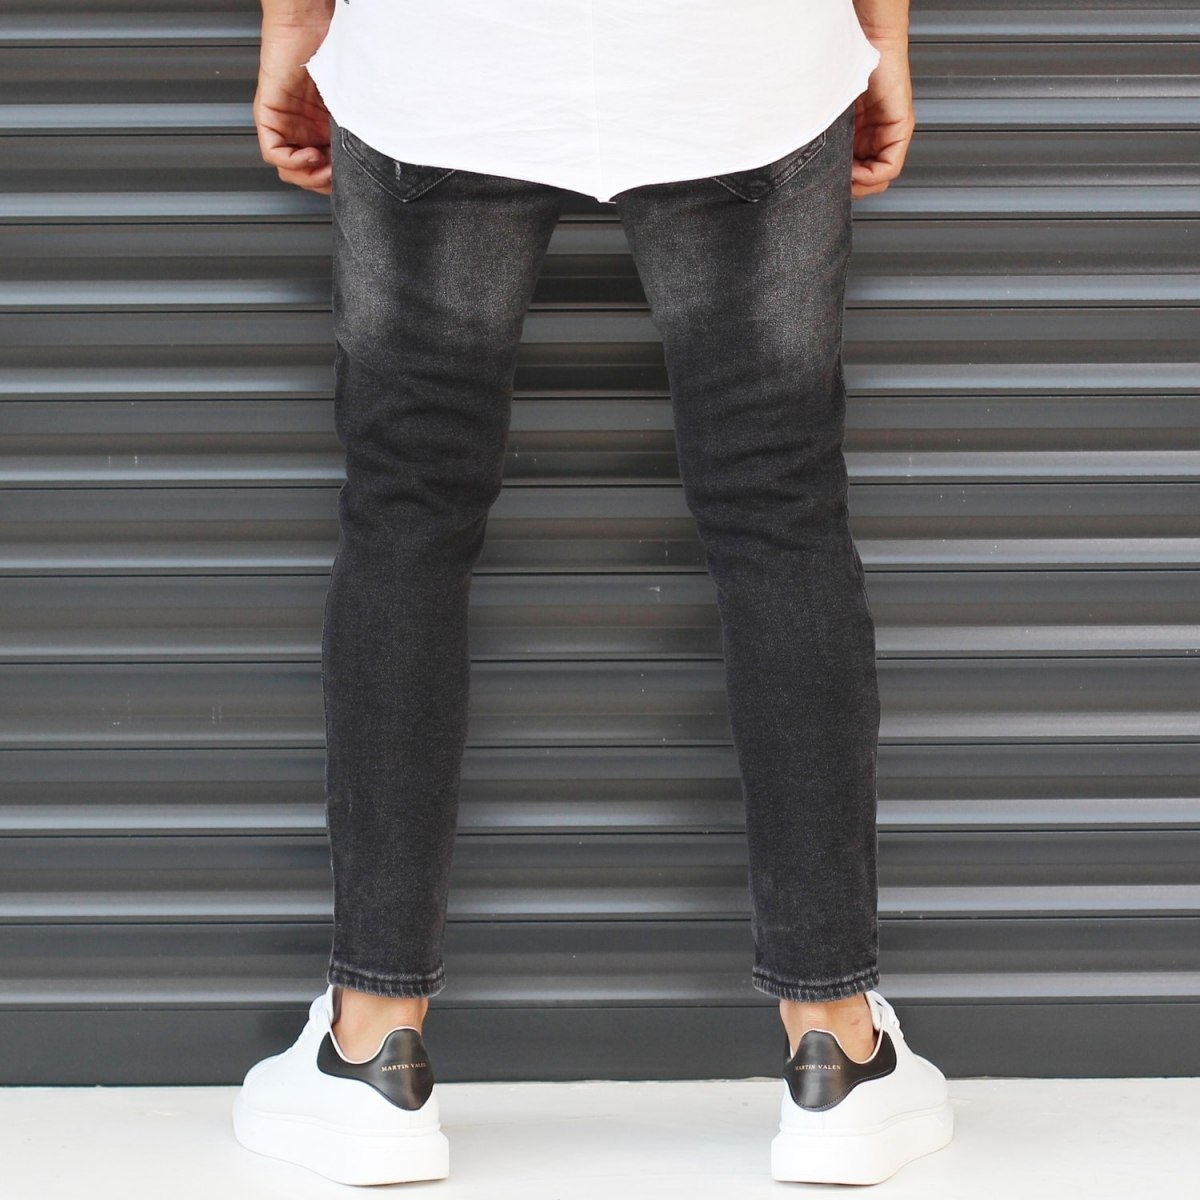 Men's Basic Stonewashed Jeans In Black Mv Premium Brand - 4